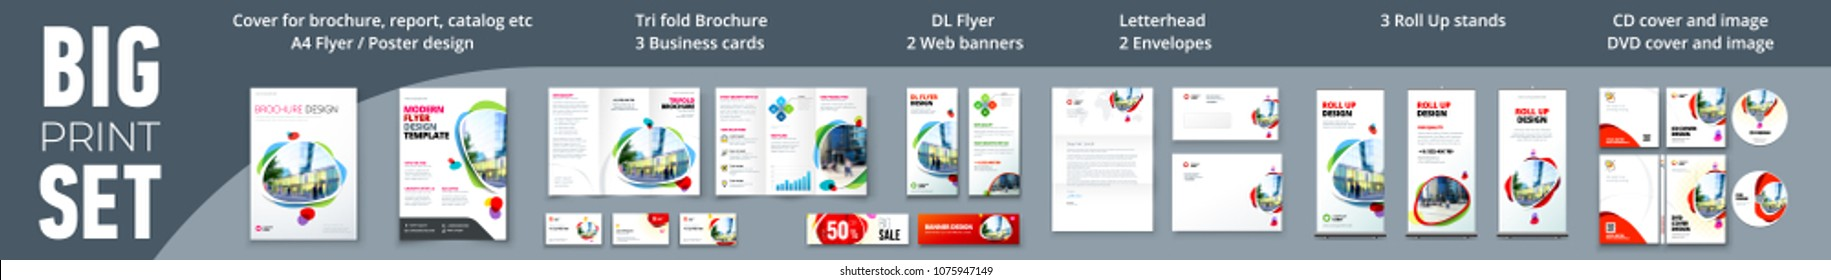 Corporate identity print template set: brochure, flyer, tri fold, business card, banner, roll up, letterhead, envelope, CD/DVD cover. Branding design. Business stationery mock-up collection.